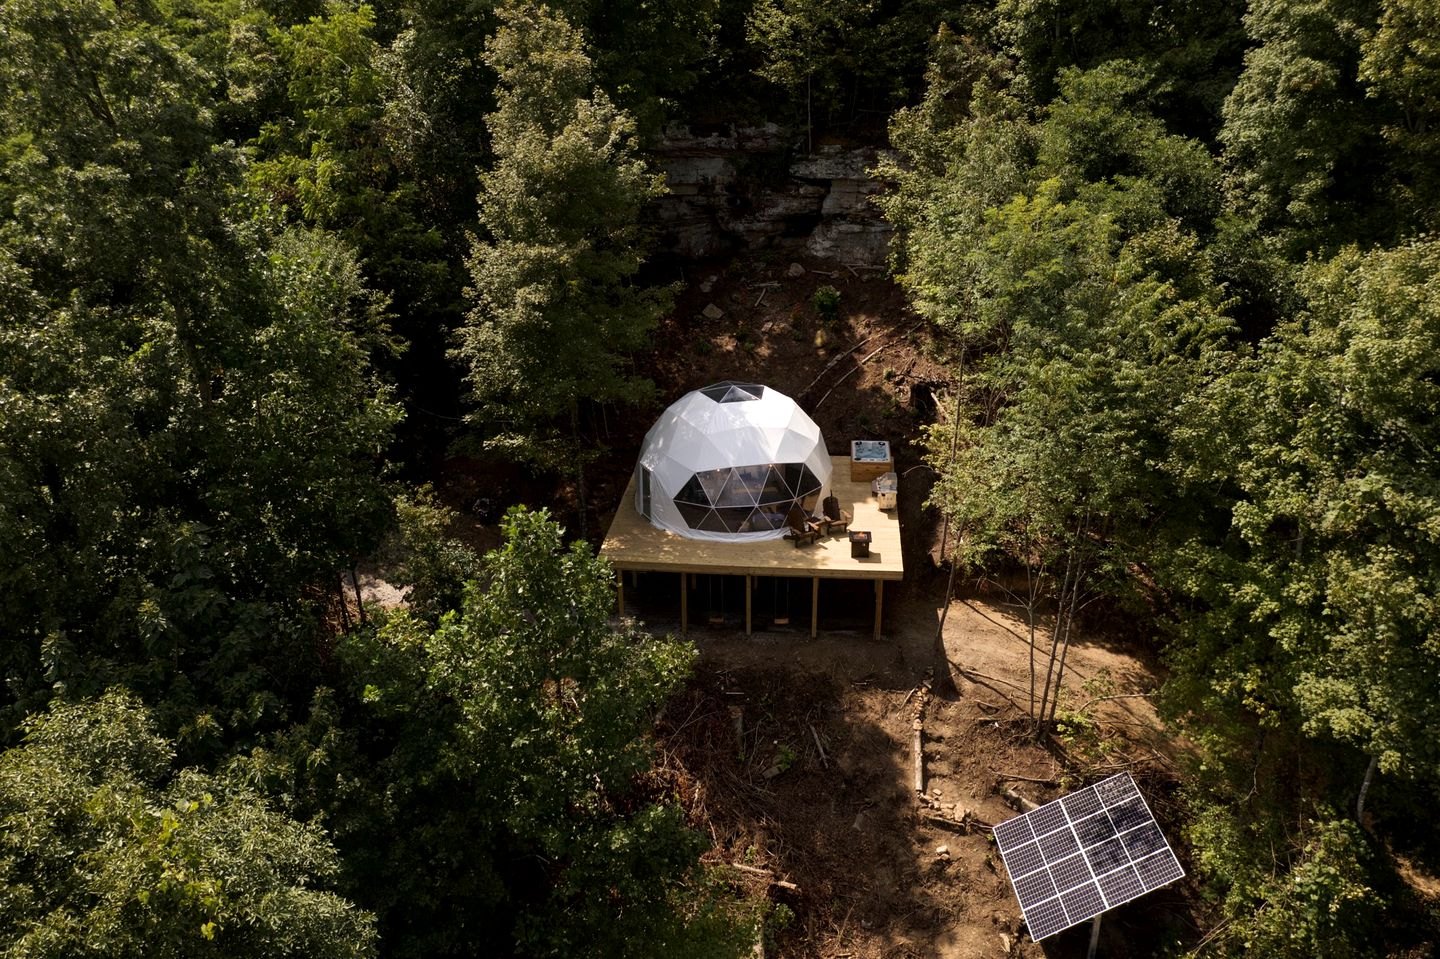 Go glamping in Tennessee in this geodesic dome house!